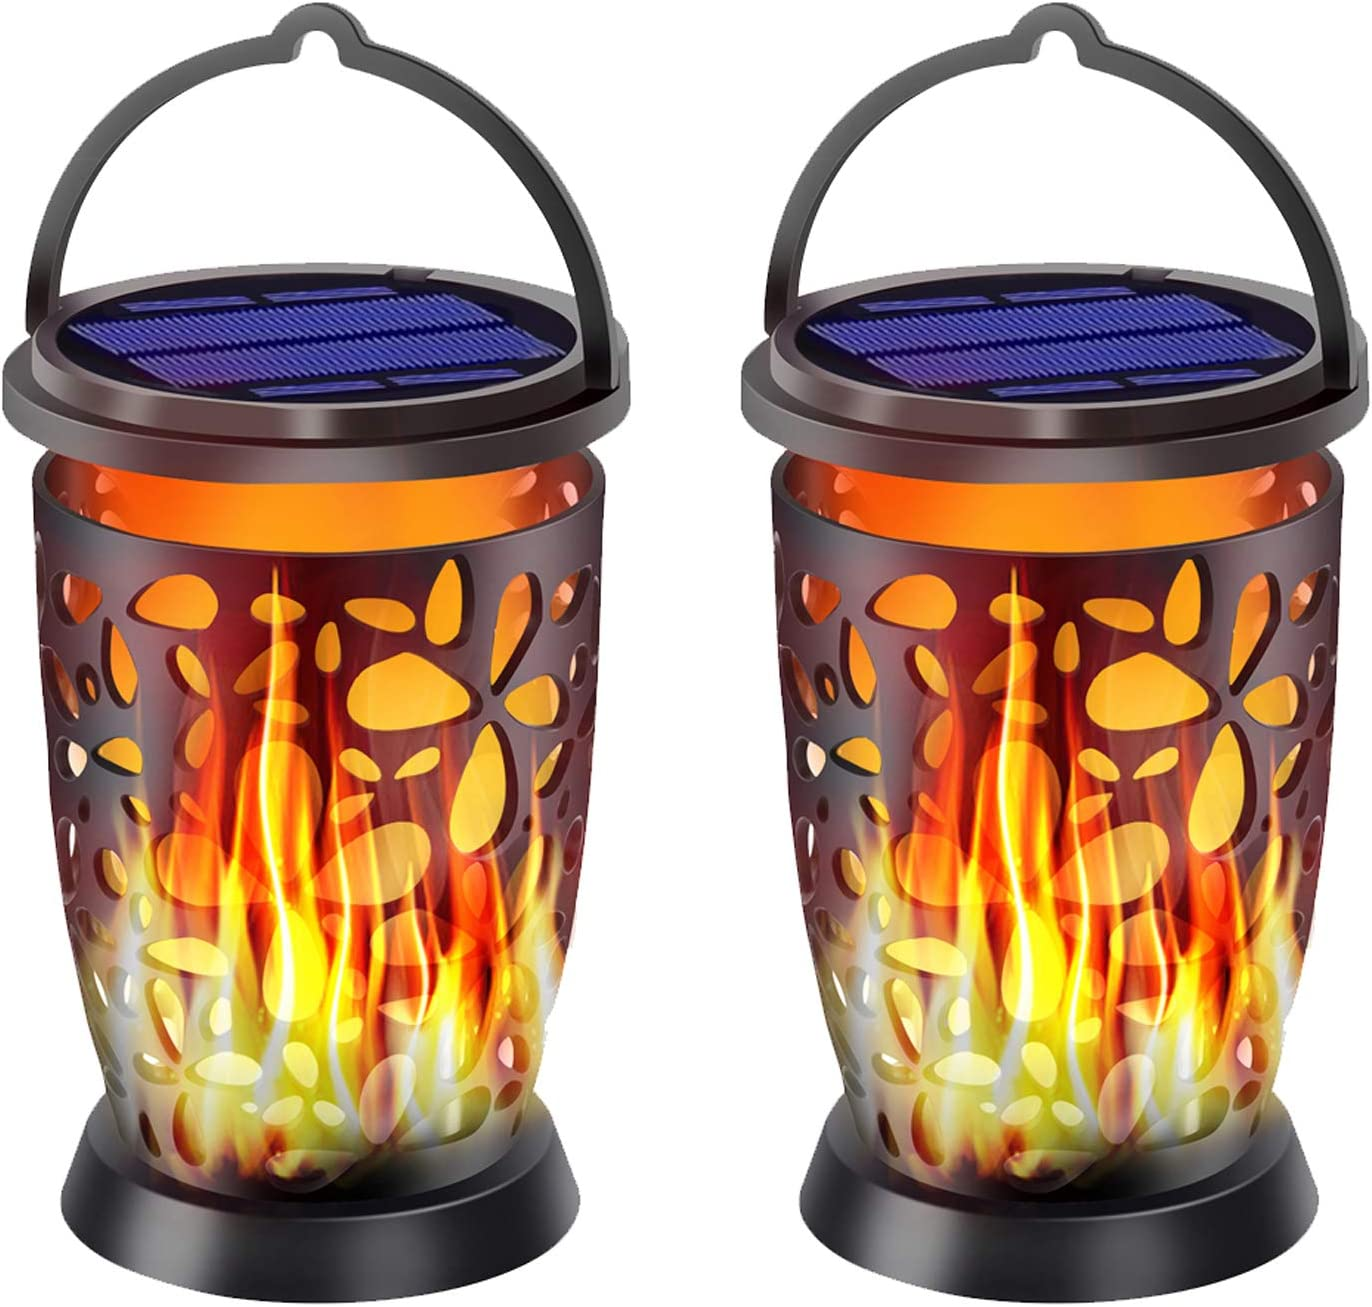 40% OFF Cheap Sale Ollivage Upgrade Colorado Springs Mall Hanging Solar Flame Outdoor Flickering Lanterns